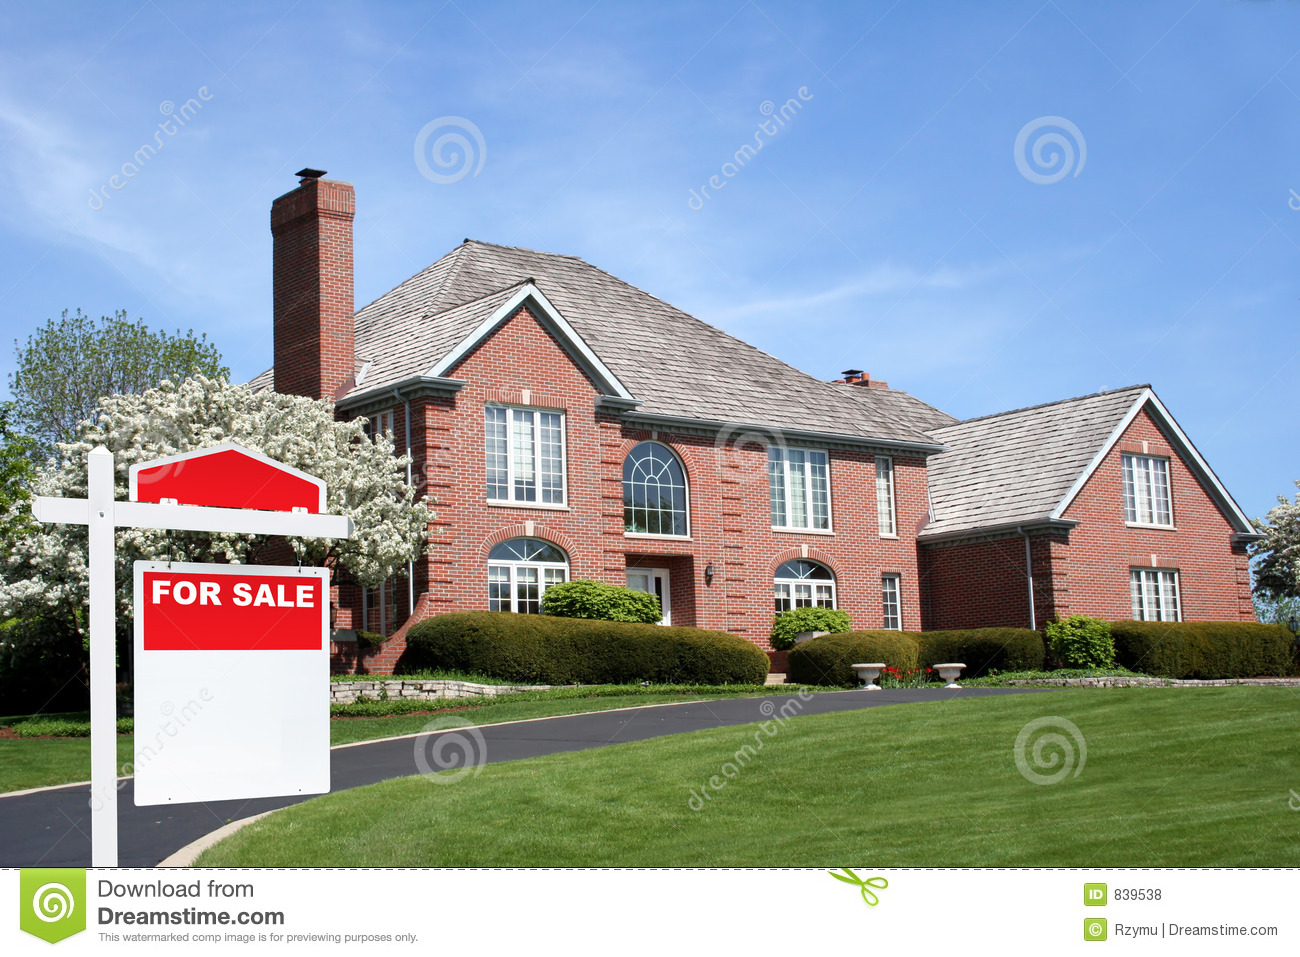 Expensive Car For Sale Or Gift Royalty Free Stock Image: House For Sale Royalty Free Stock Photos